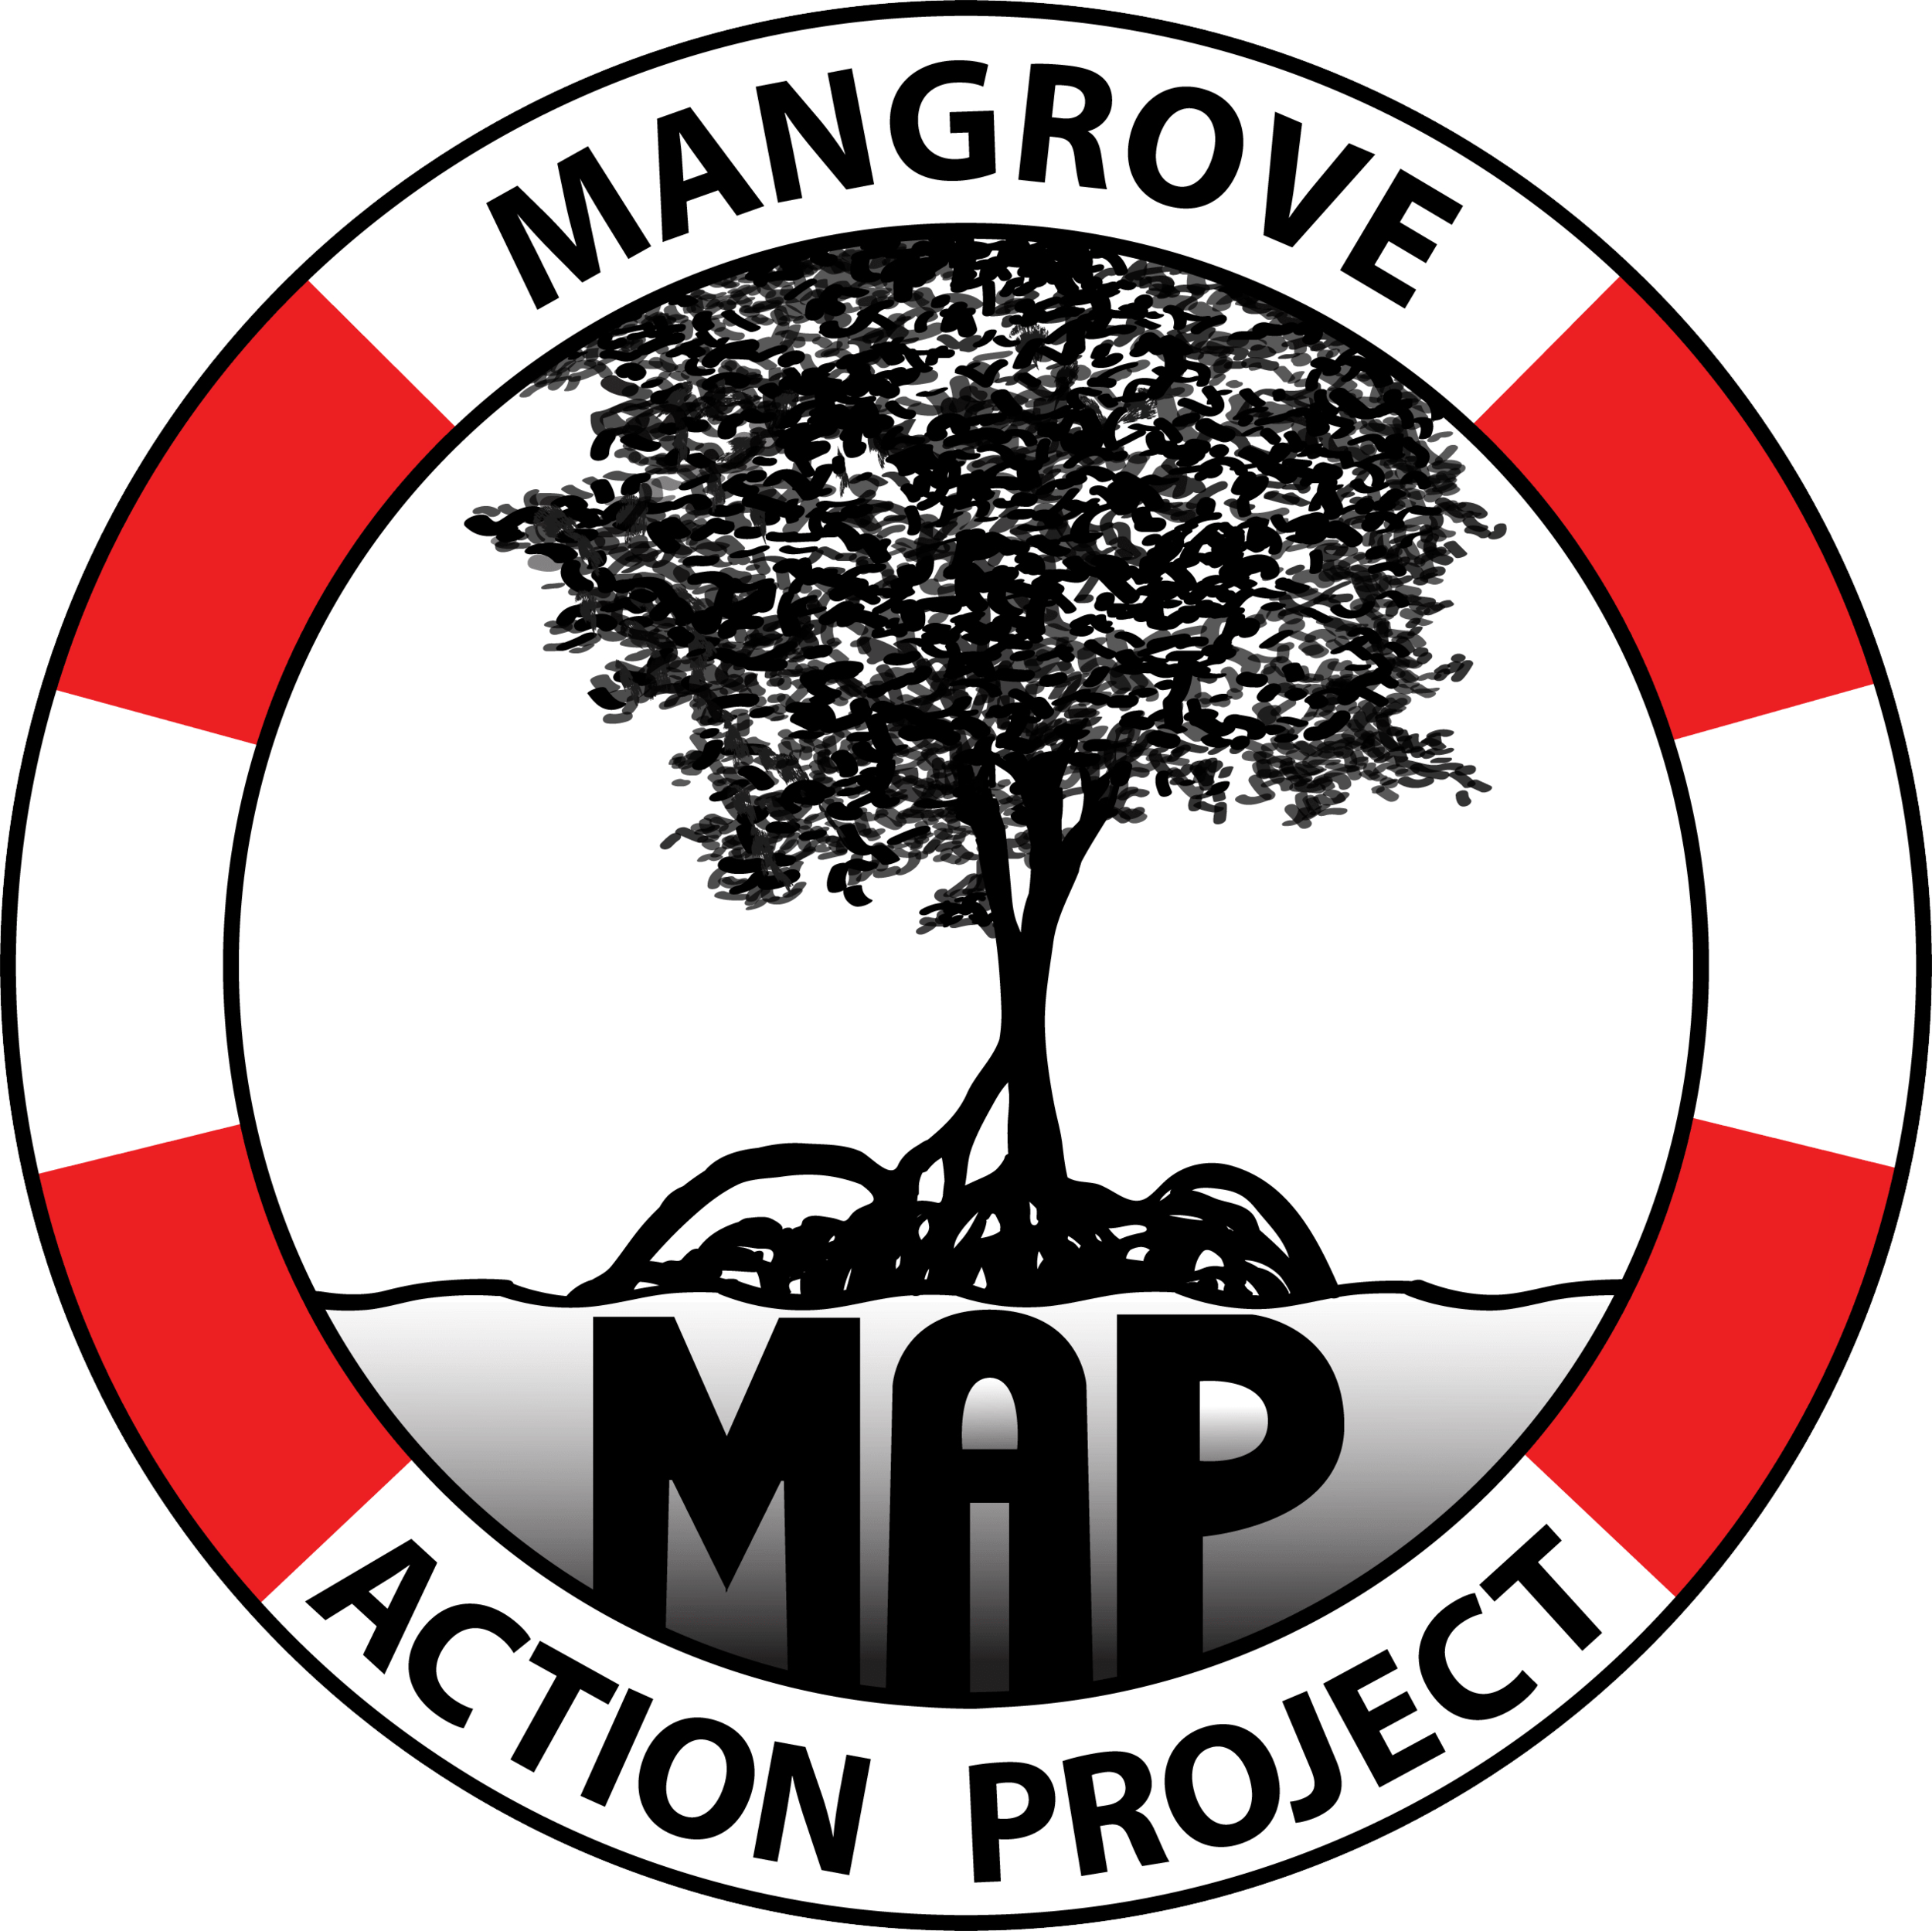 mangrove action project.png